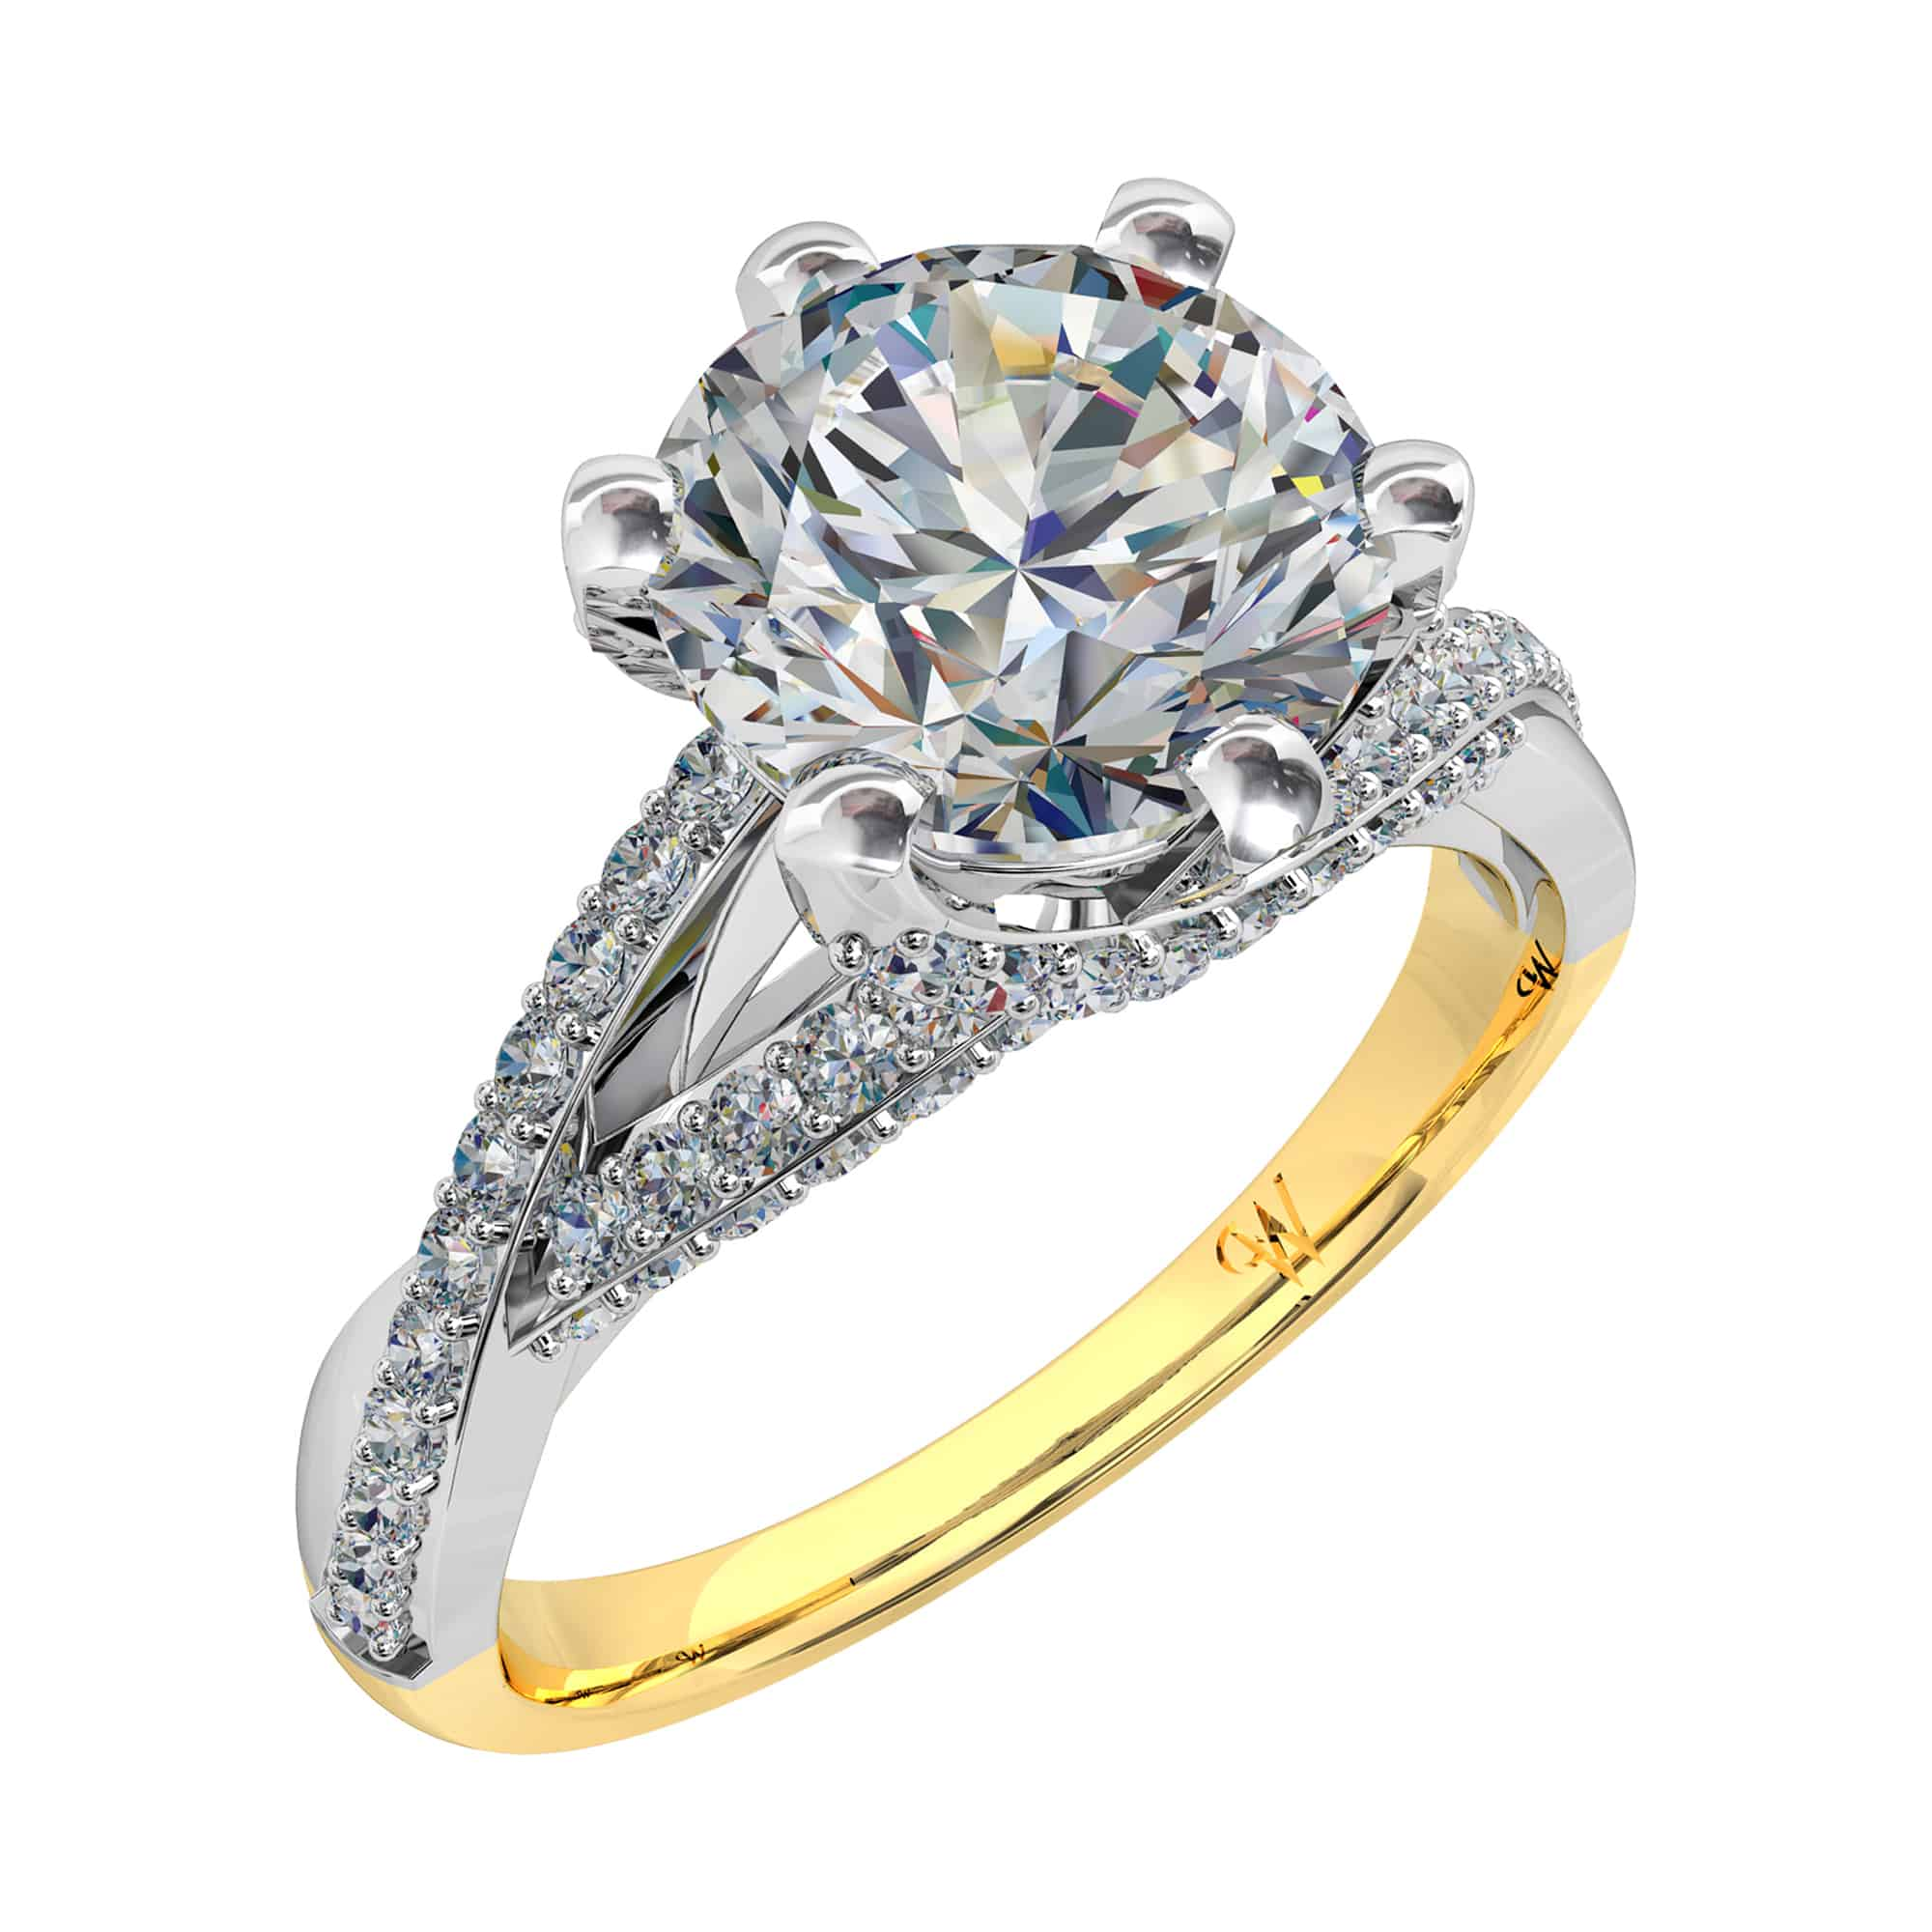 cut k drawing carat diamond brilliant ring realistic caymancode wg